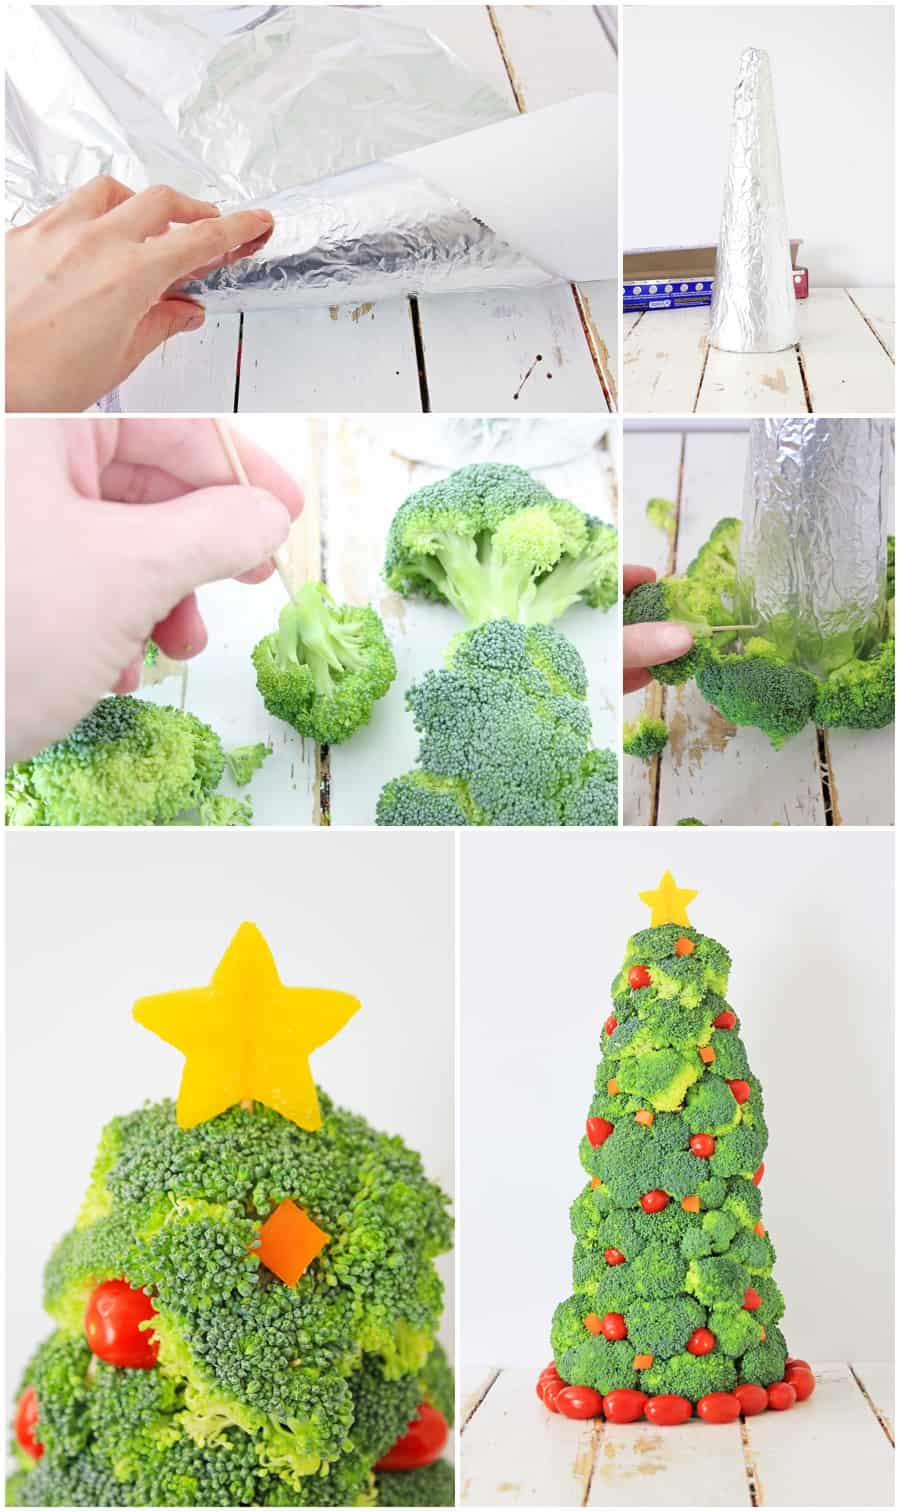 Broccoli Christmas Tree Healthy Holiday Snack for Kids - process